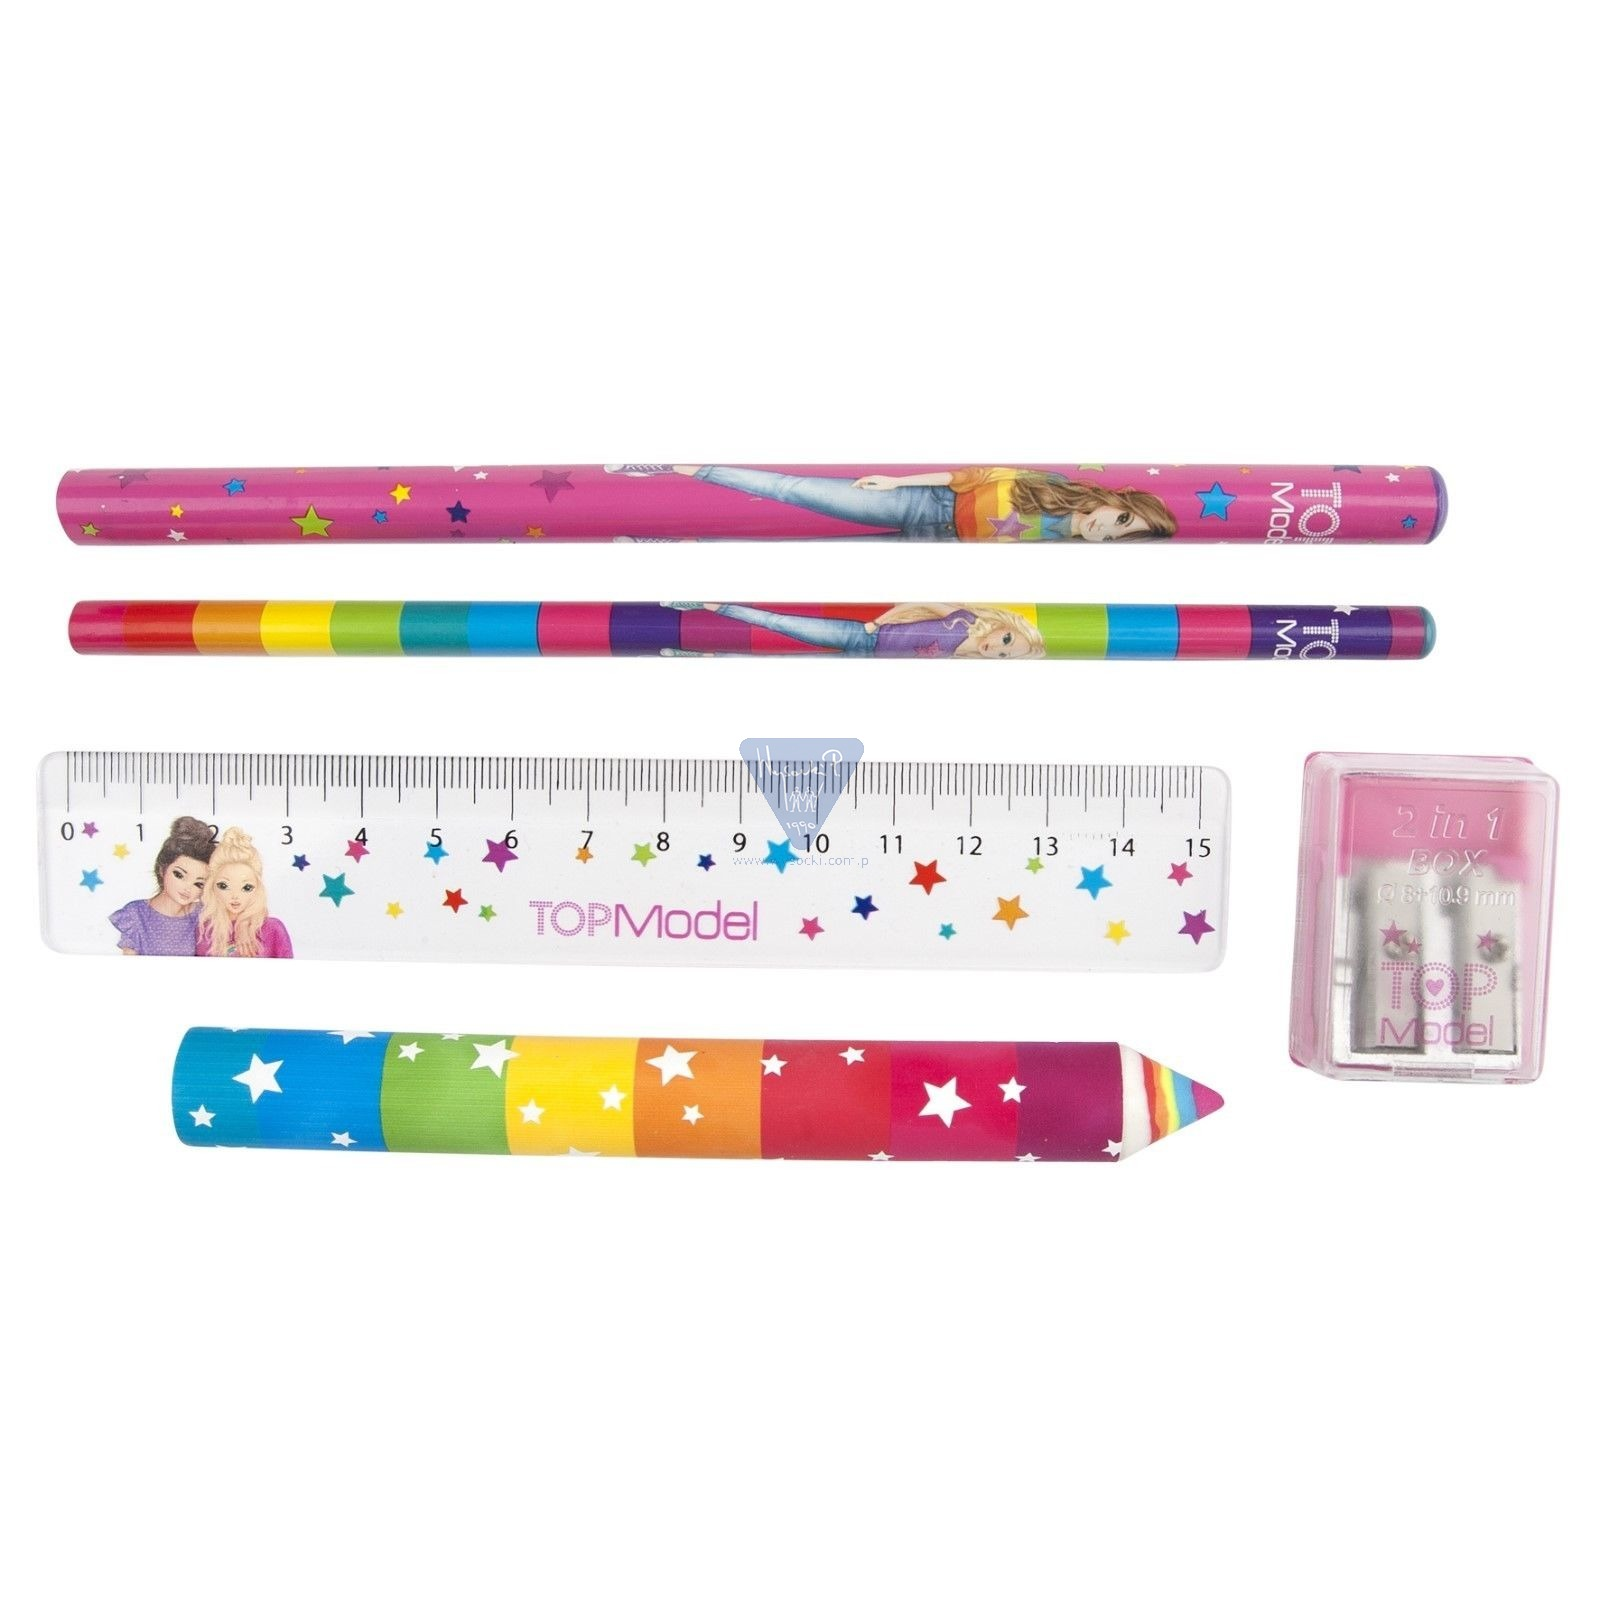 Top Model Stationery Pencil Case Set